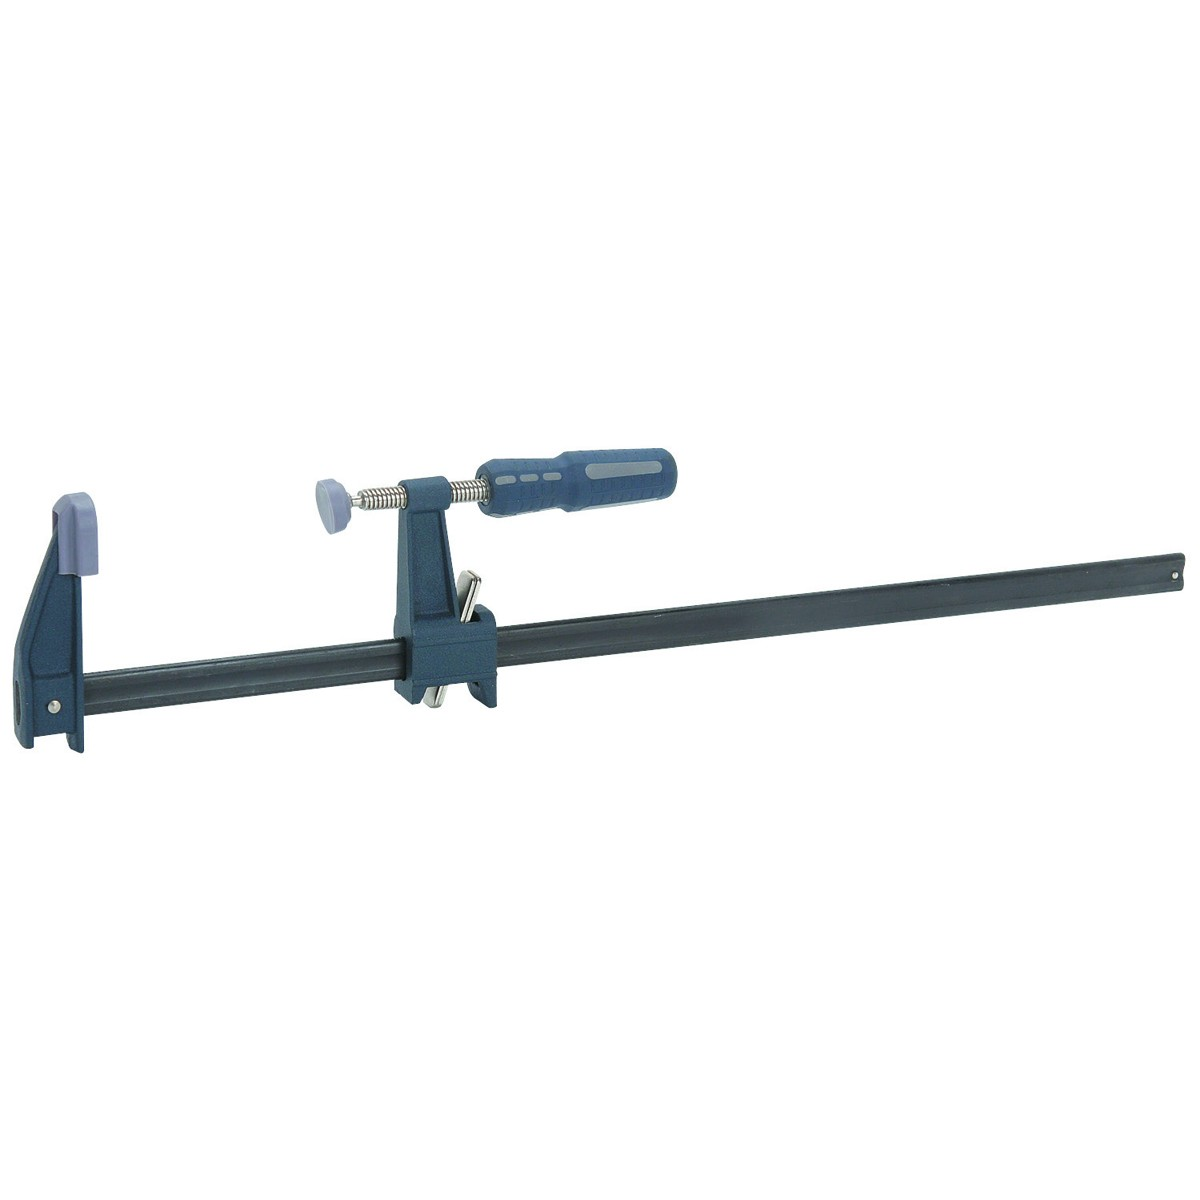 18 in. Quick Release Bar Clamp